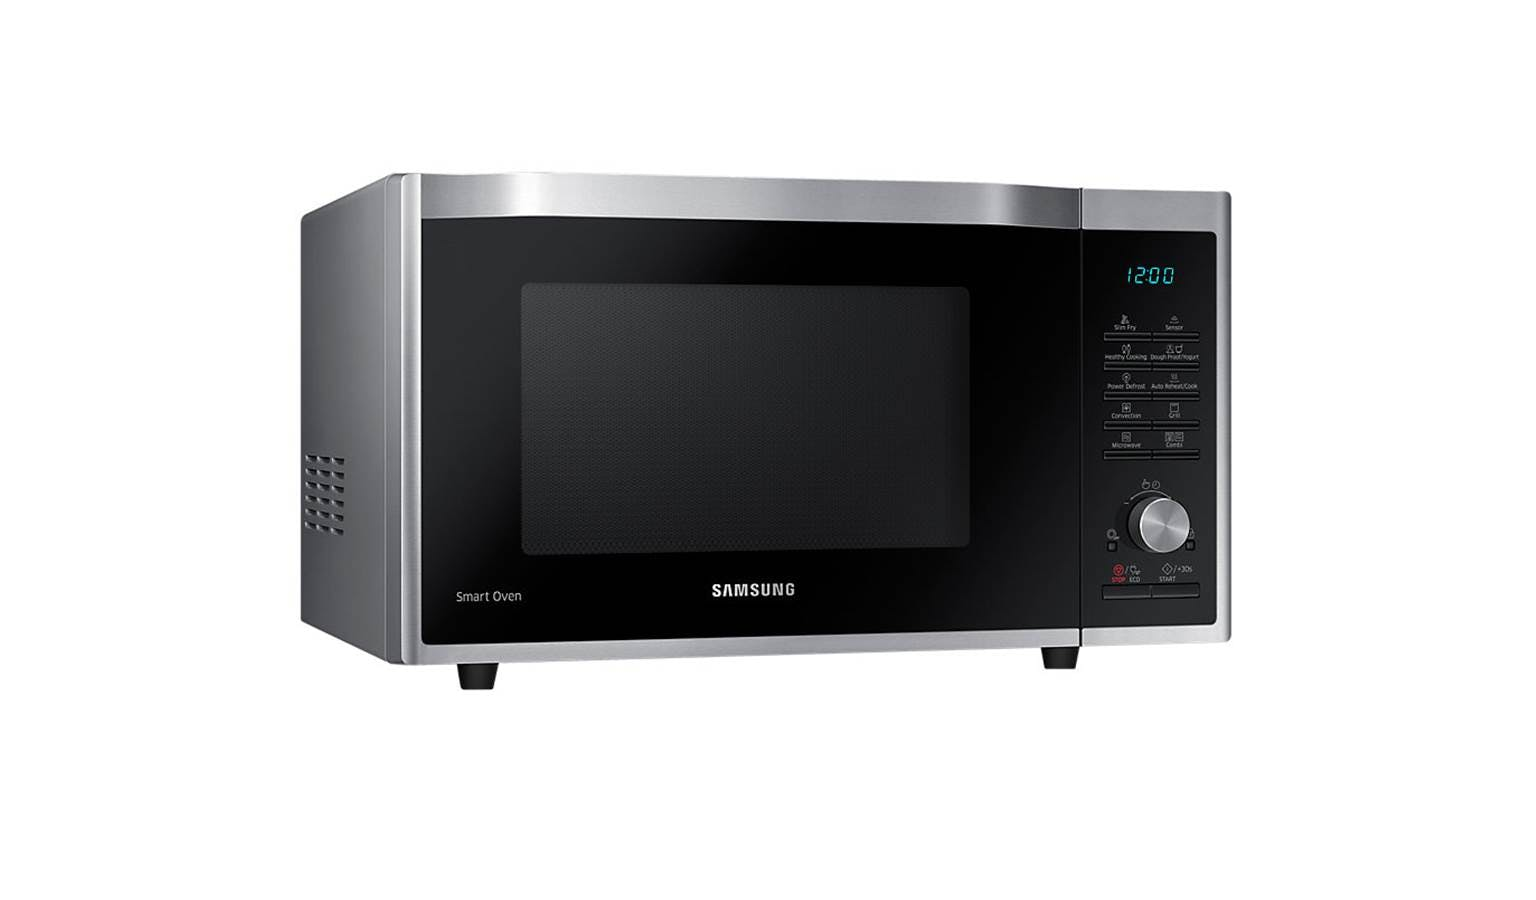 Samsung 32l Grill Convection Microwave With Smart Moisture Sensor